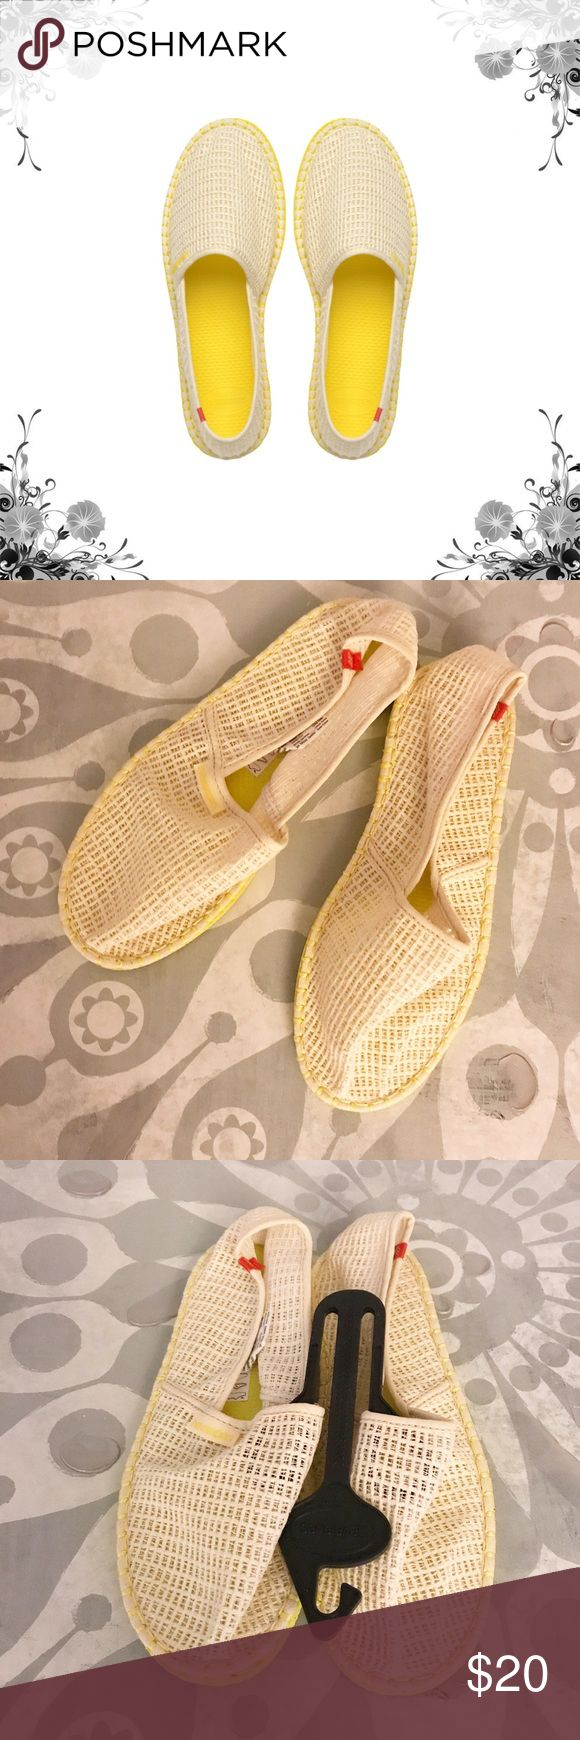 Havainas Origine Summer Espadrille Beige/Yellow. Brazil's original and authentic flip flop has a new companion! Containing the same rubber sole used as the flip flop, this jute and canvas espadrille screams warm weather while providing comfort and function. Slip On. Textile Upper/Manmade Sole. Lightweight. Bundle for discounts! Thank you for shopping my closet! Havaianas Shoes Espadrilles